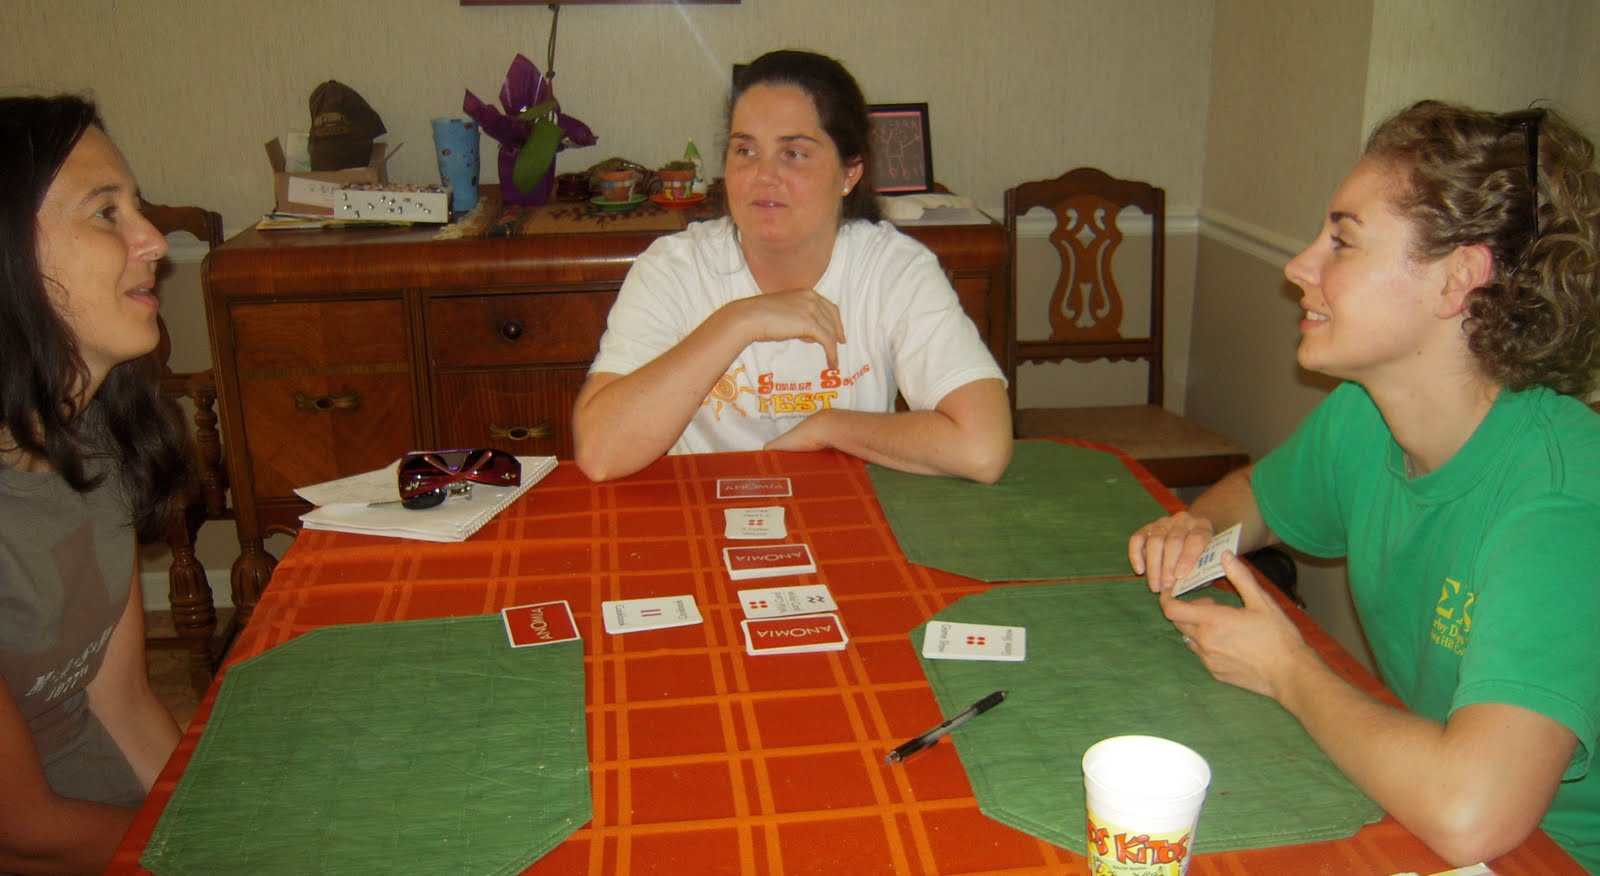 mensa games 2010